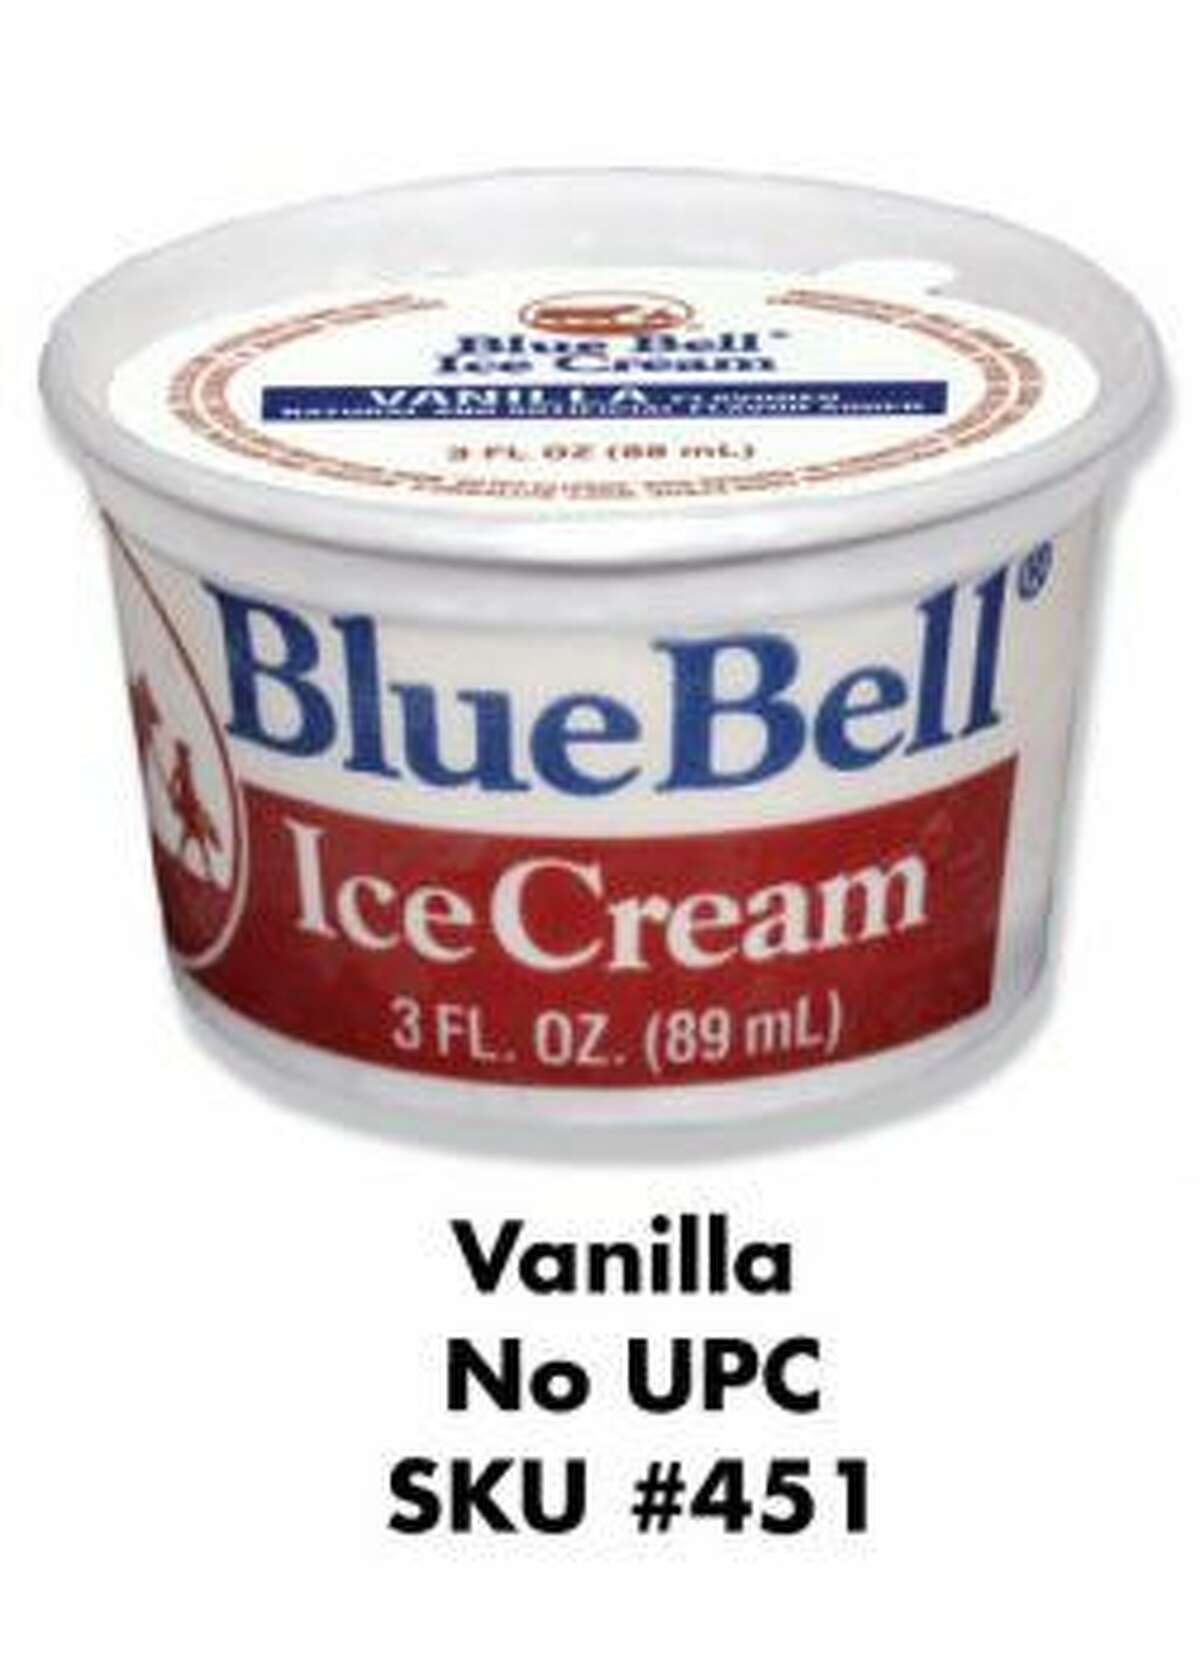 These items have been recalled by Blue Bell Creameries in Brenham, Texas as part of a listeria outbreak.